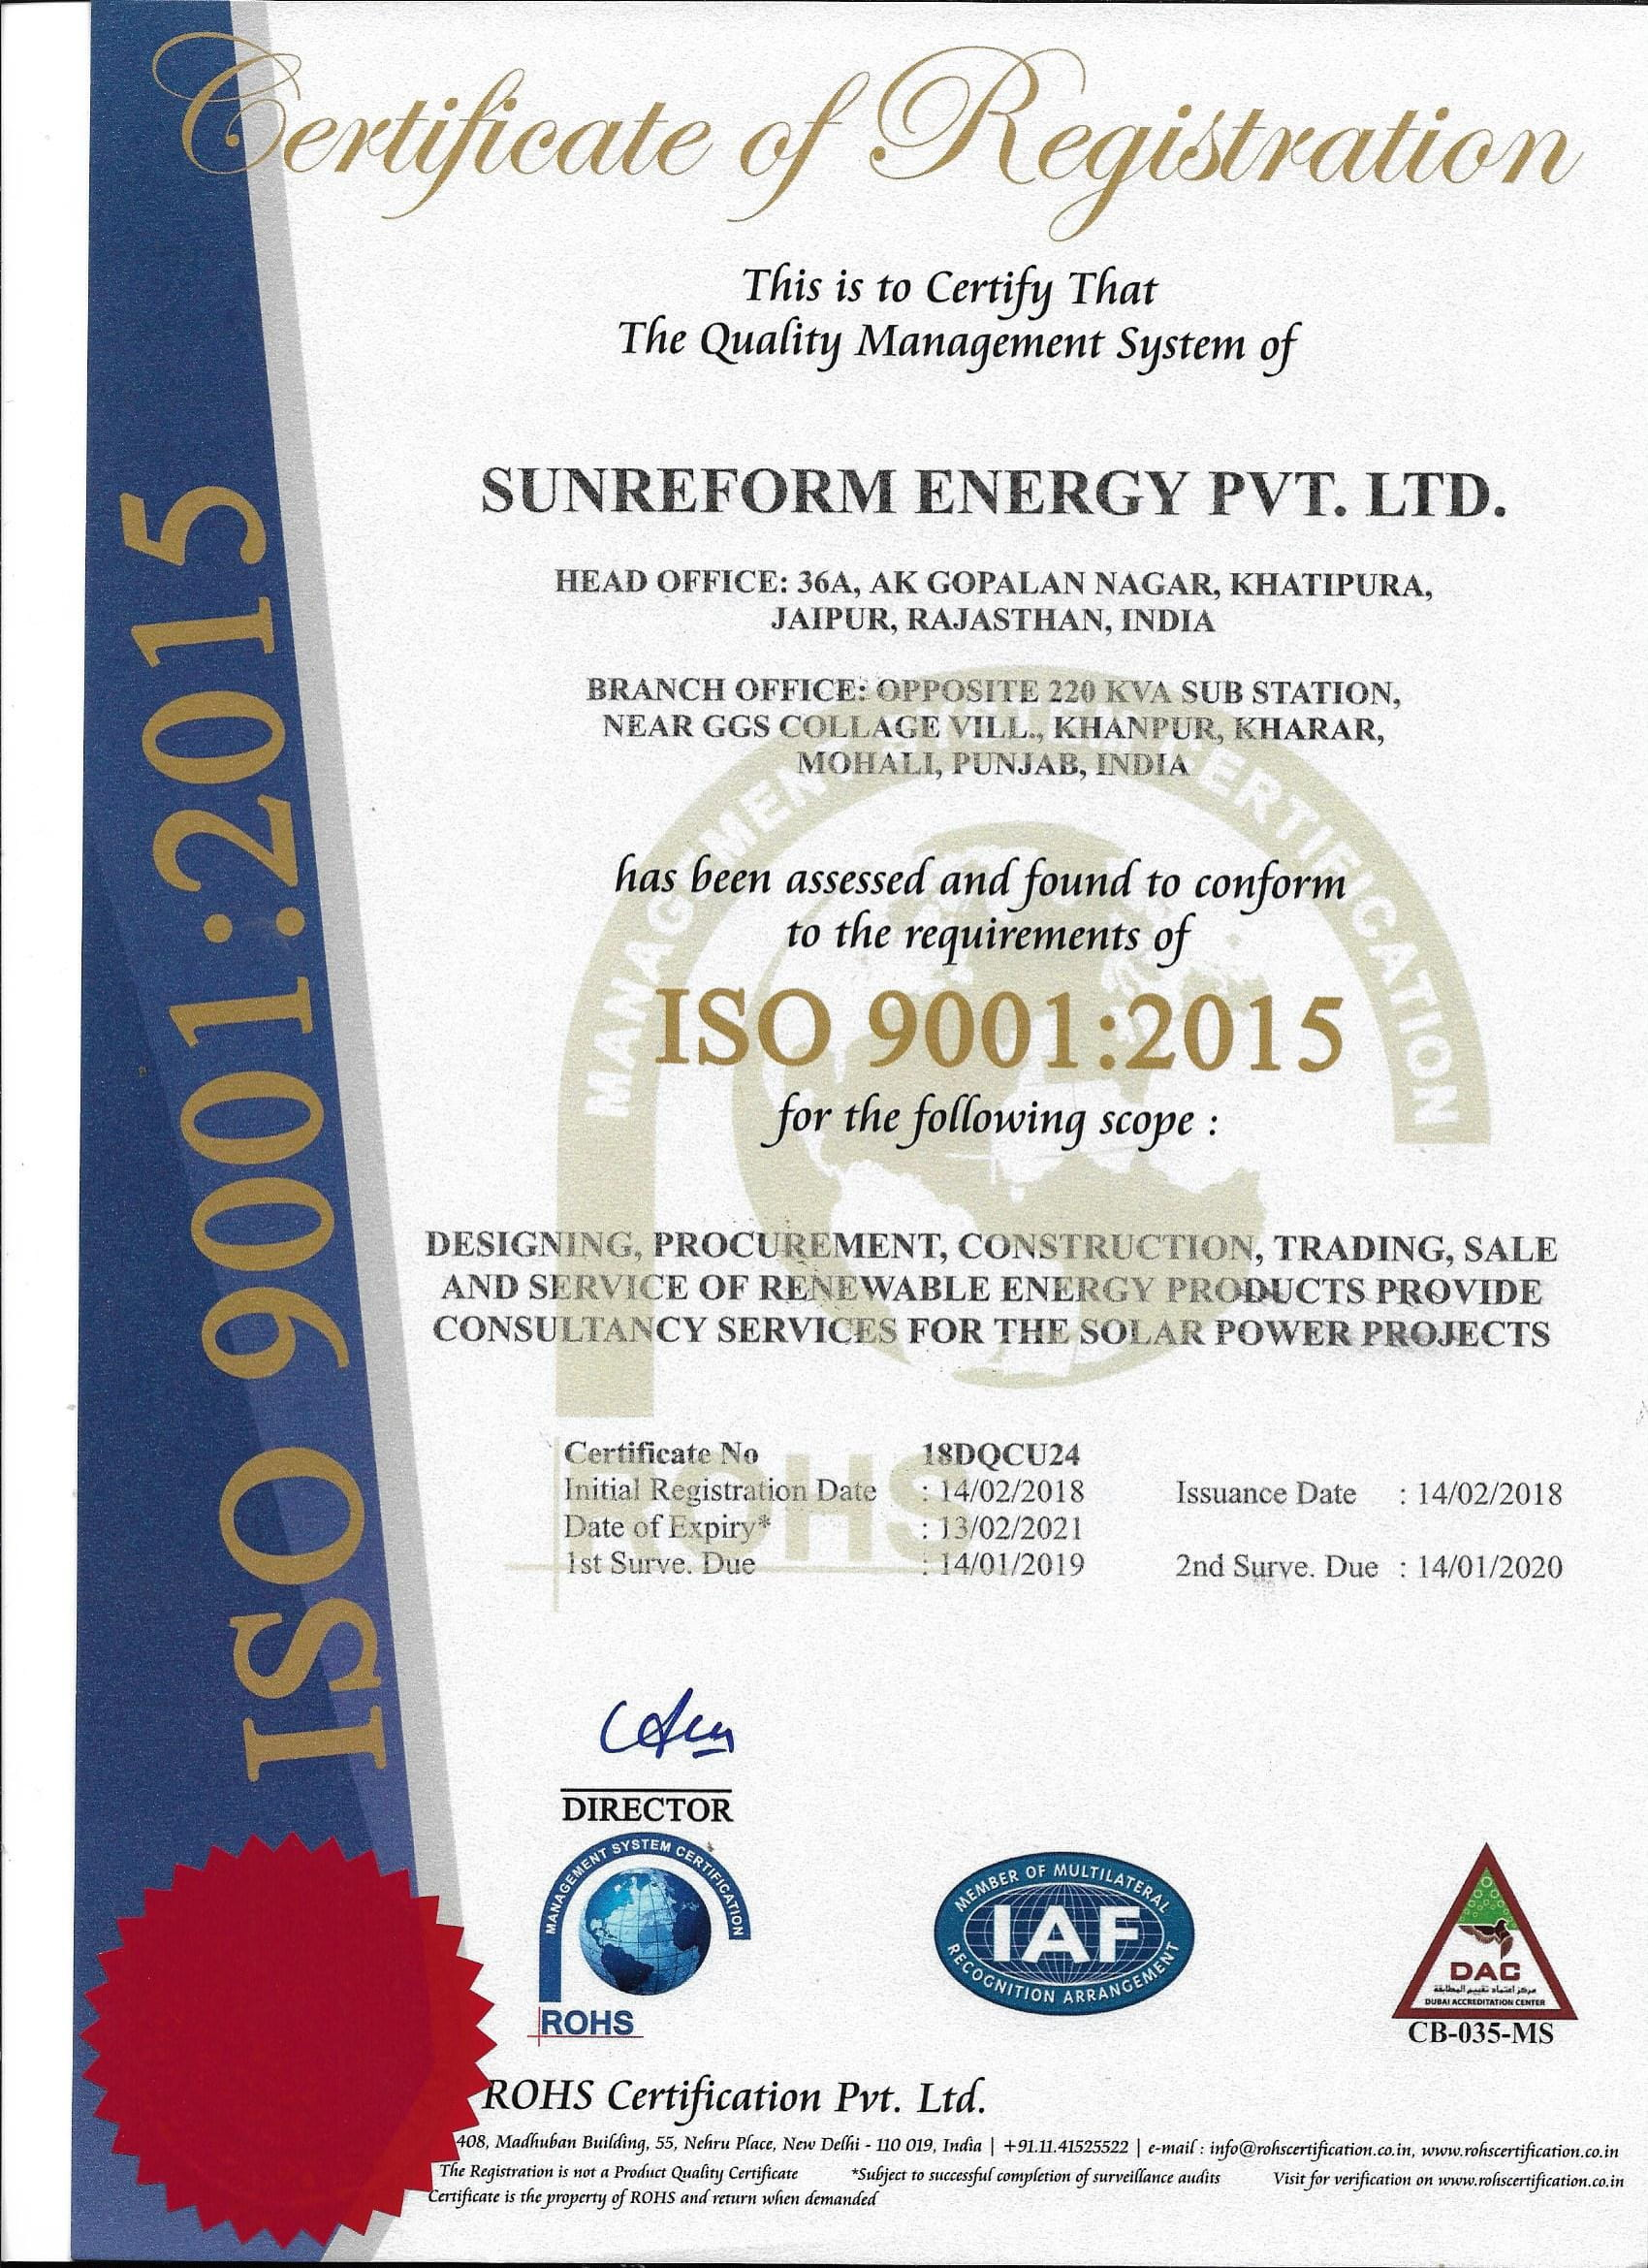 SUNREFORM ENERGY PVT. LTD. (1)-1